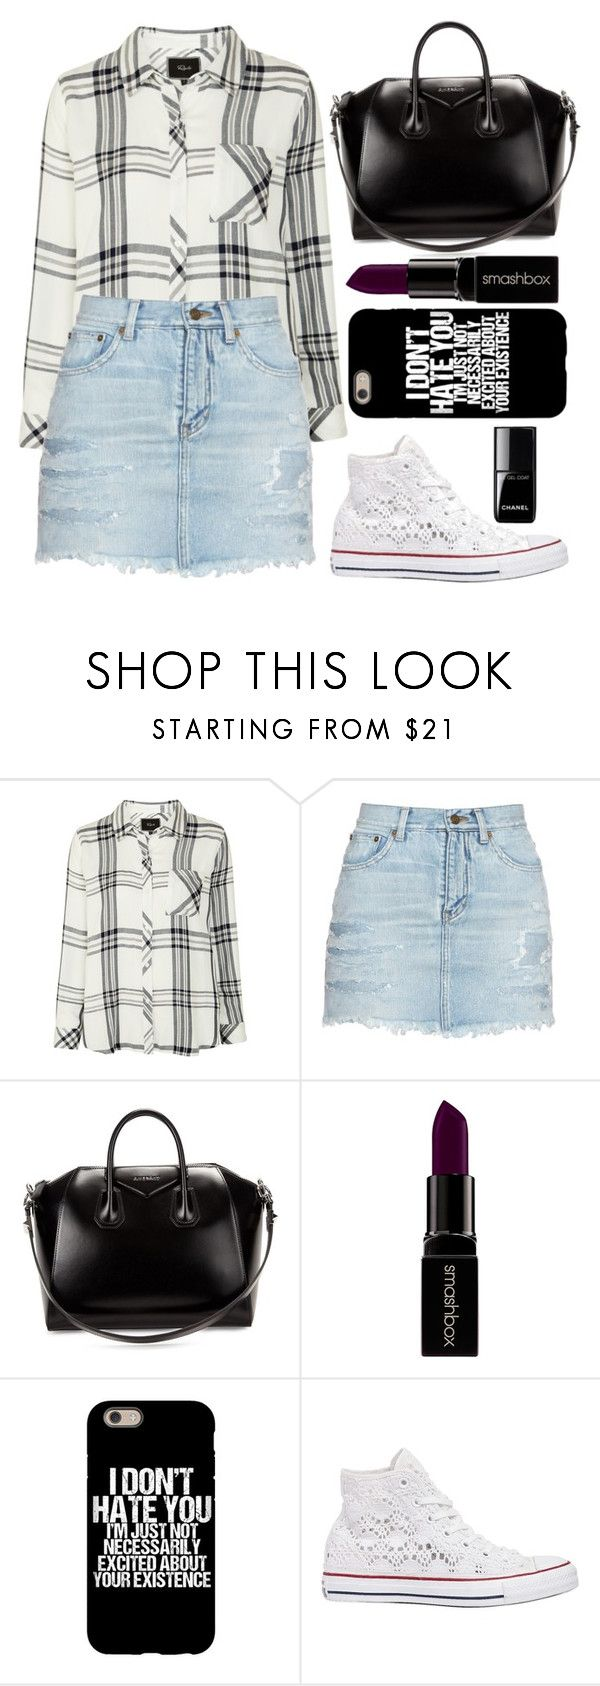 """Untitled #241"" by barijeziberi ❤ liked on Polyvore featuring Rails, Yves Saint Laurent, Givenchy, Smashbox and Converse"